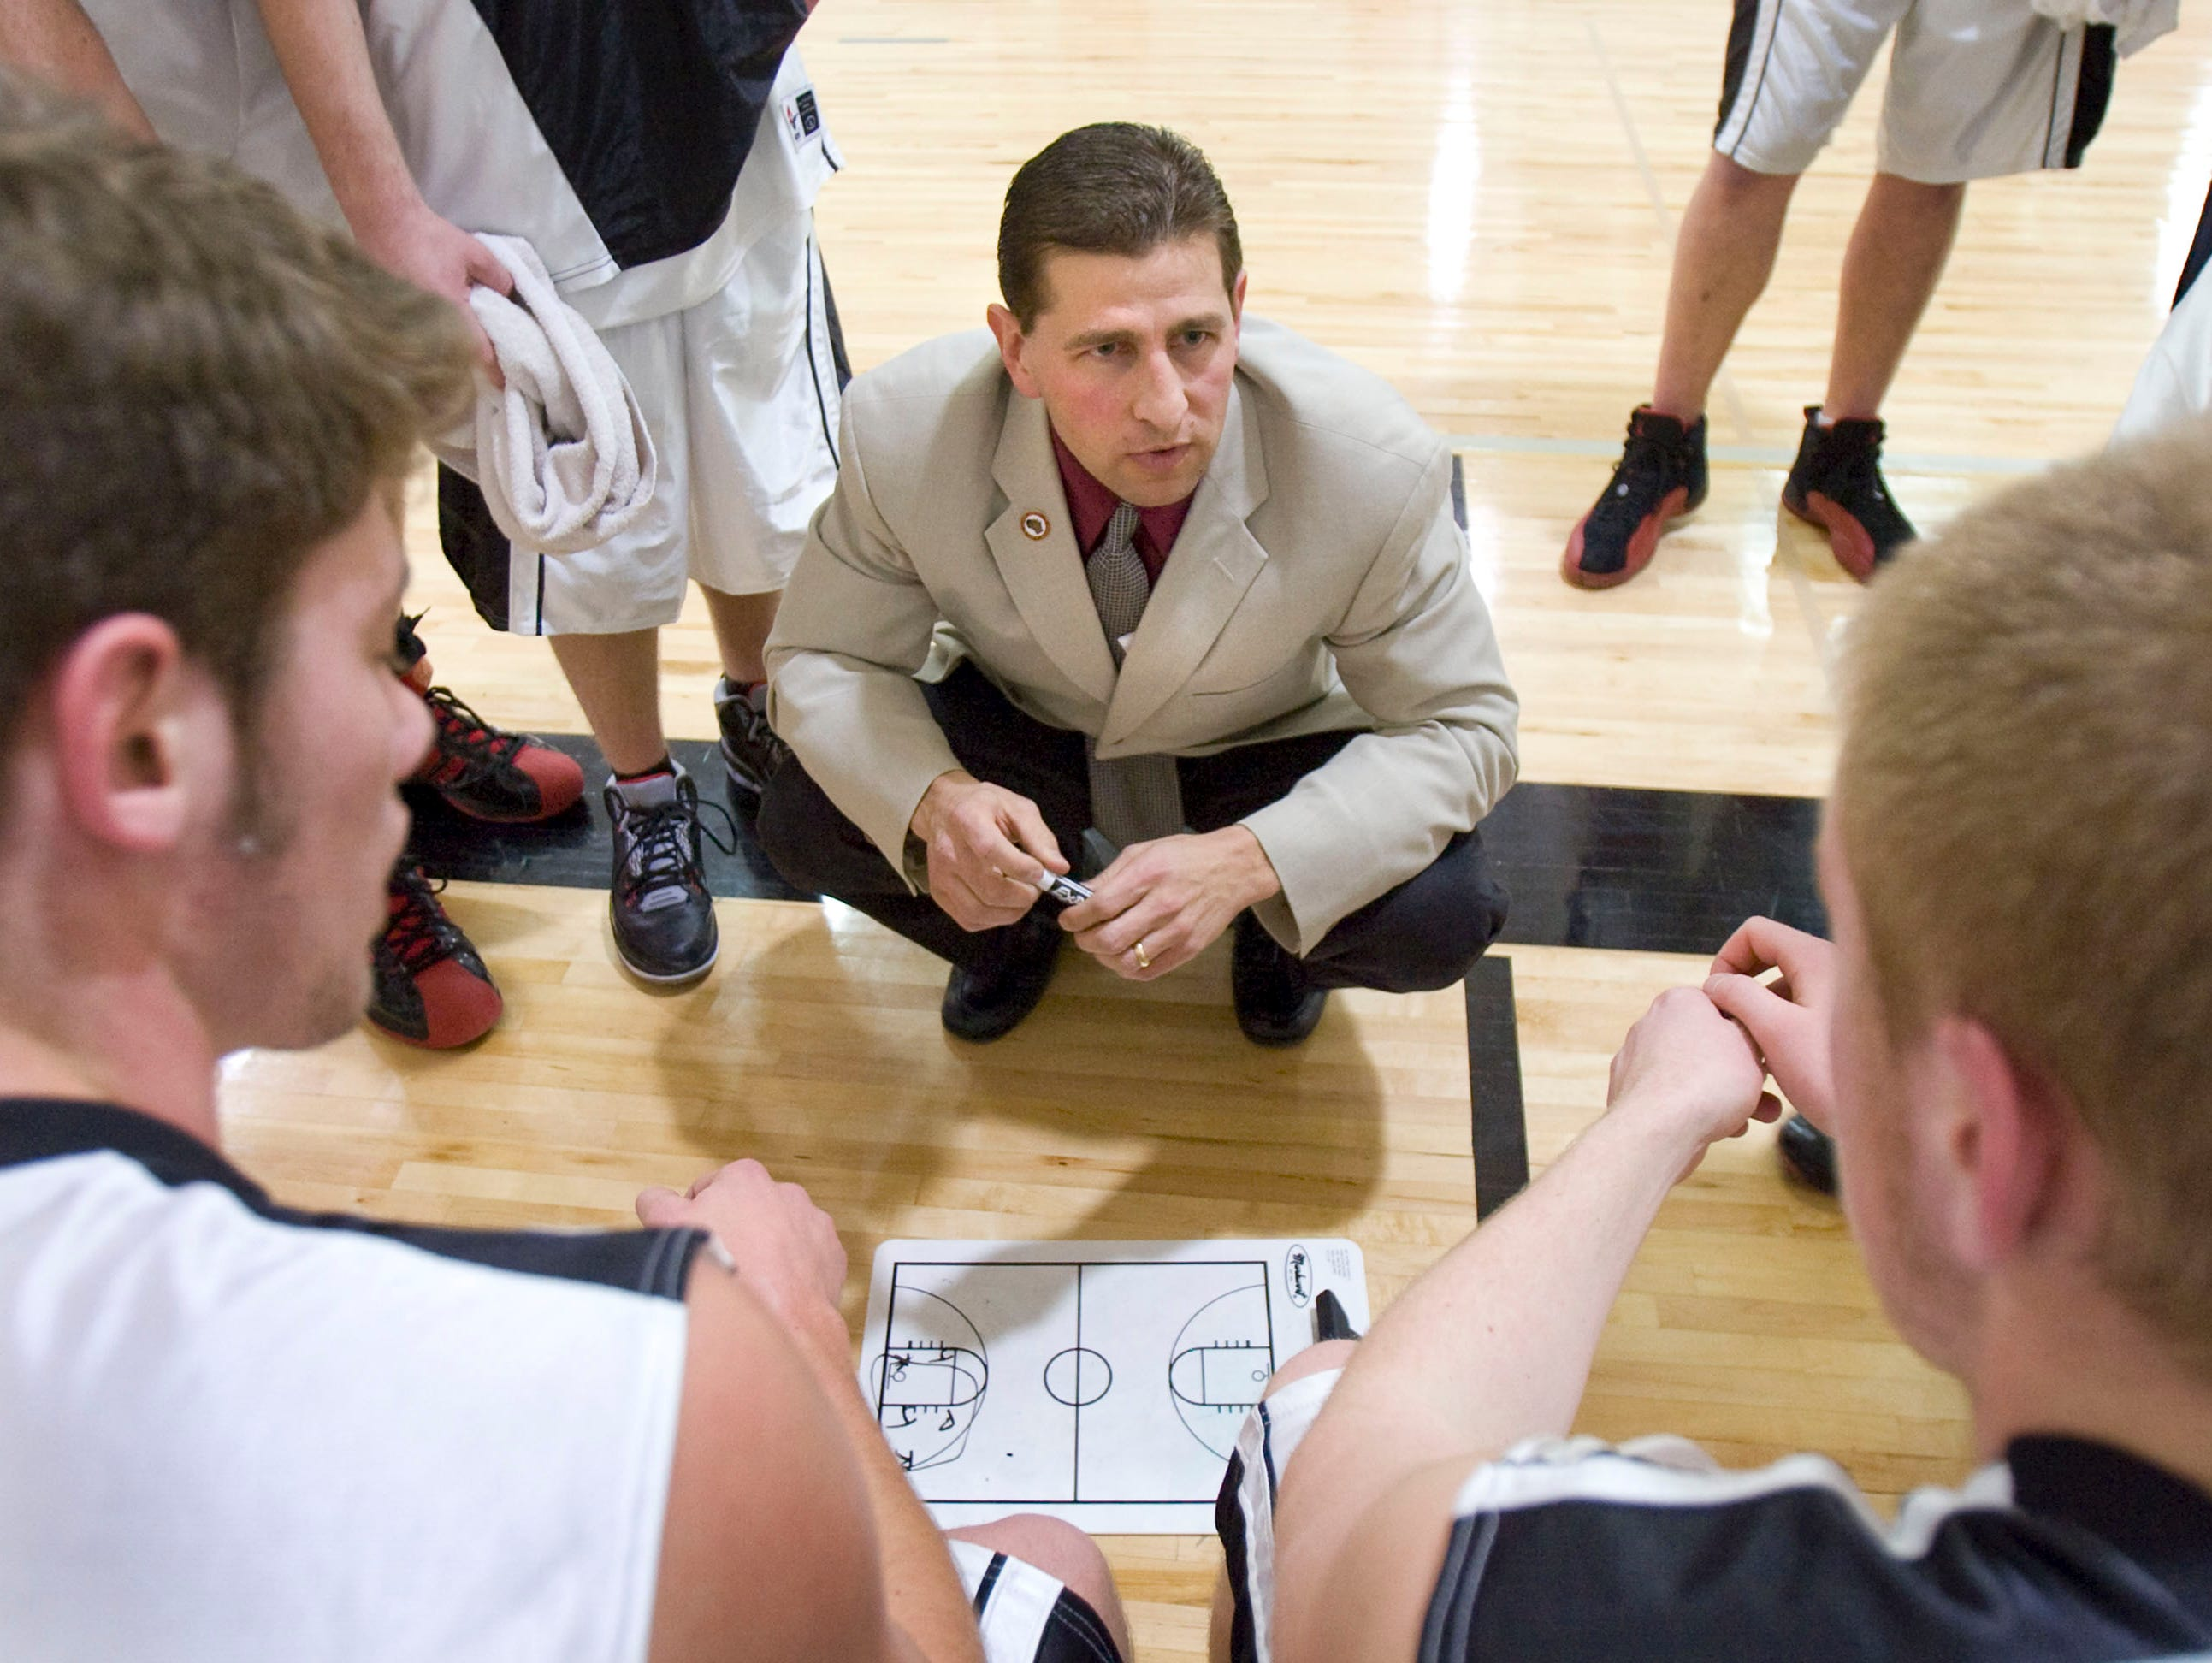 Lee Rabas has been named boys' basketball coach at Neenah High School. Rabas spent the past six seasons as the men's basketball coach at the University of Wisconsin-Fox Valley.